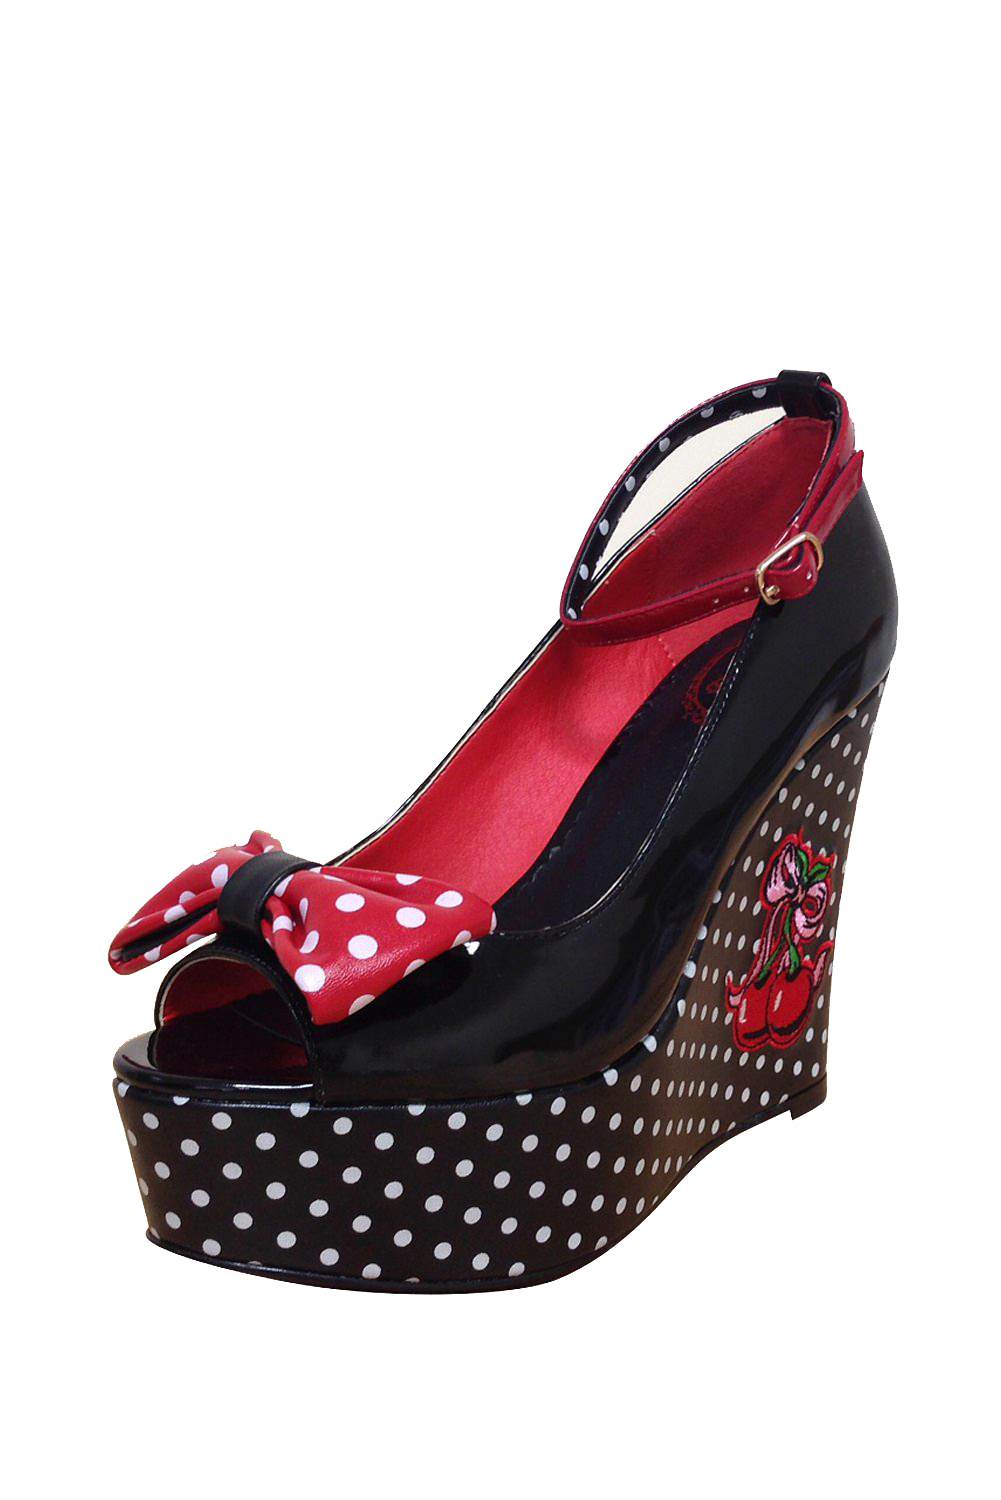 Dancing Days Sophia 50s Platform Cherry Black Shoes